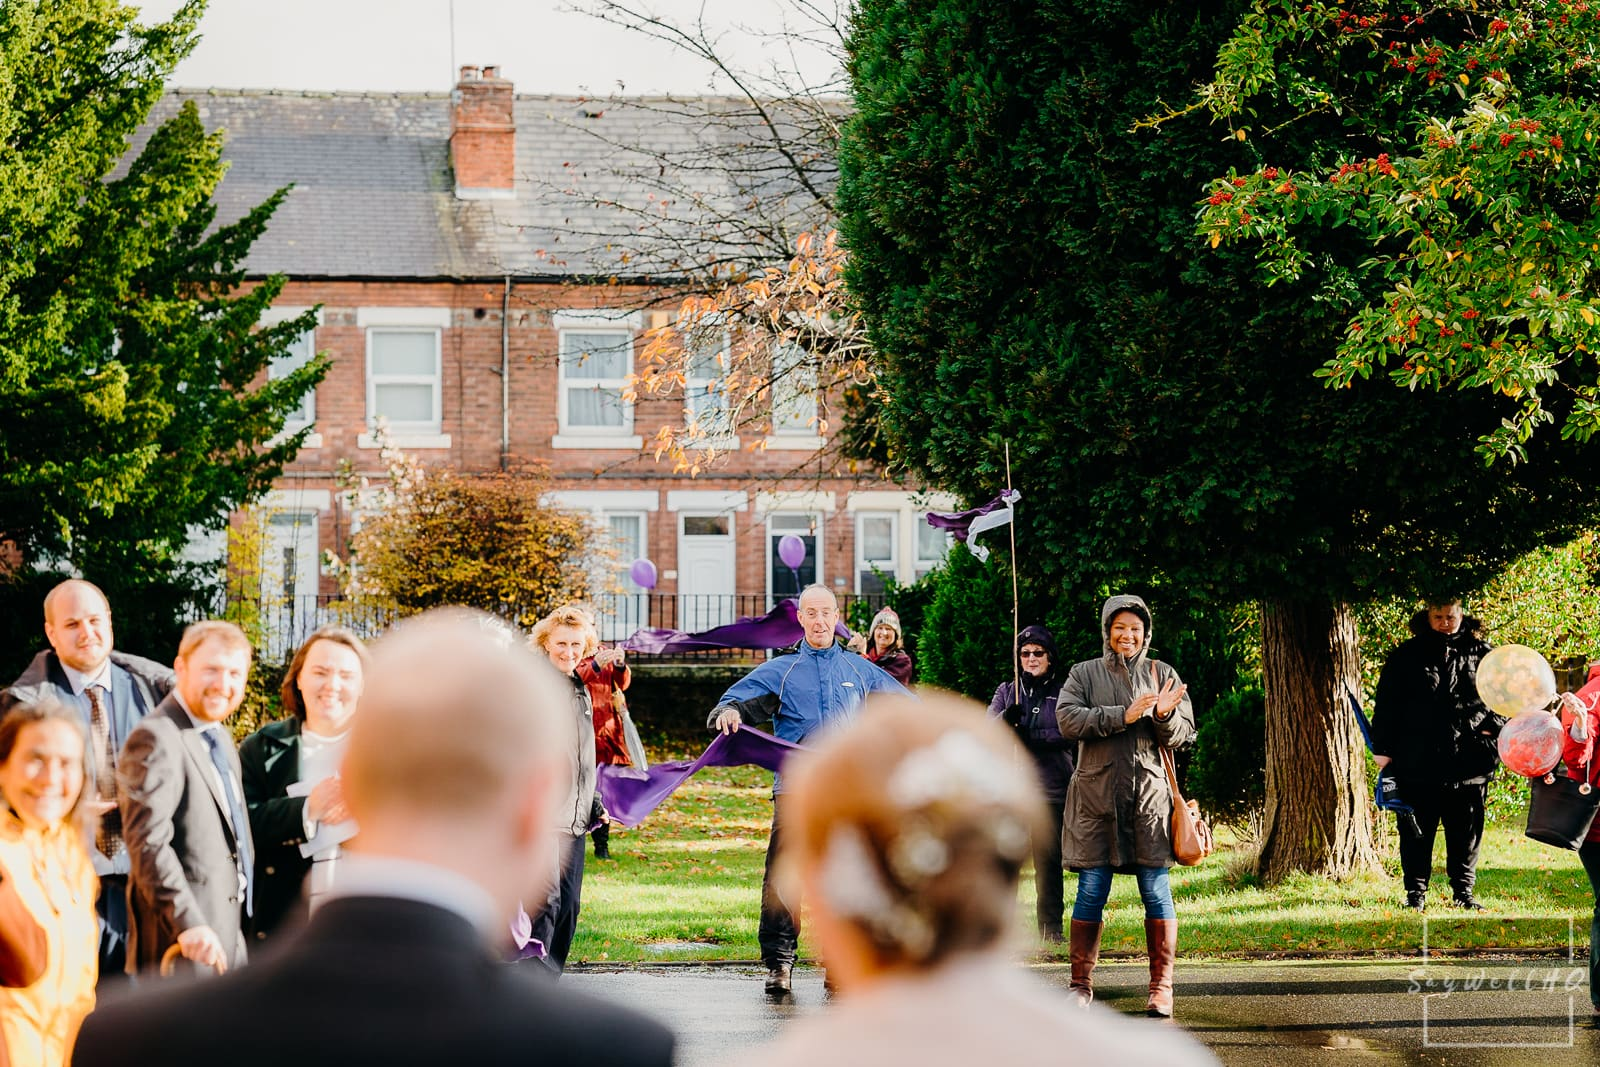 St Judes Church Mapperley Wedding Photography - wedding guests greet the newly weds outside the Church following the wedding ceremony